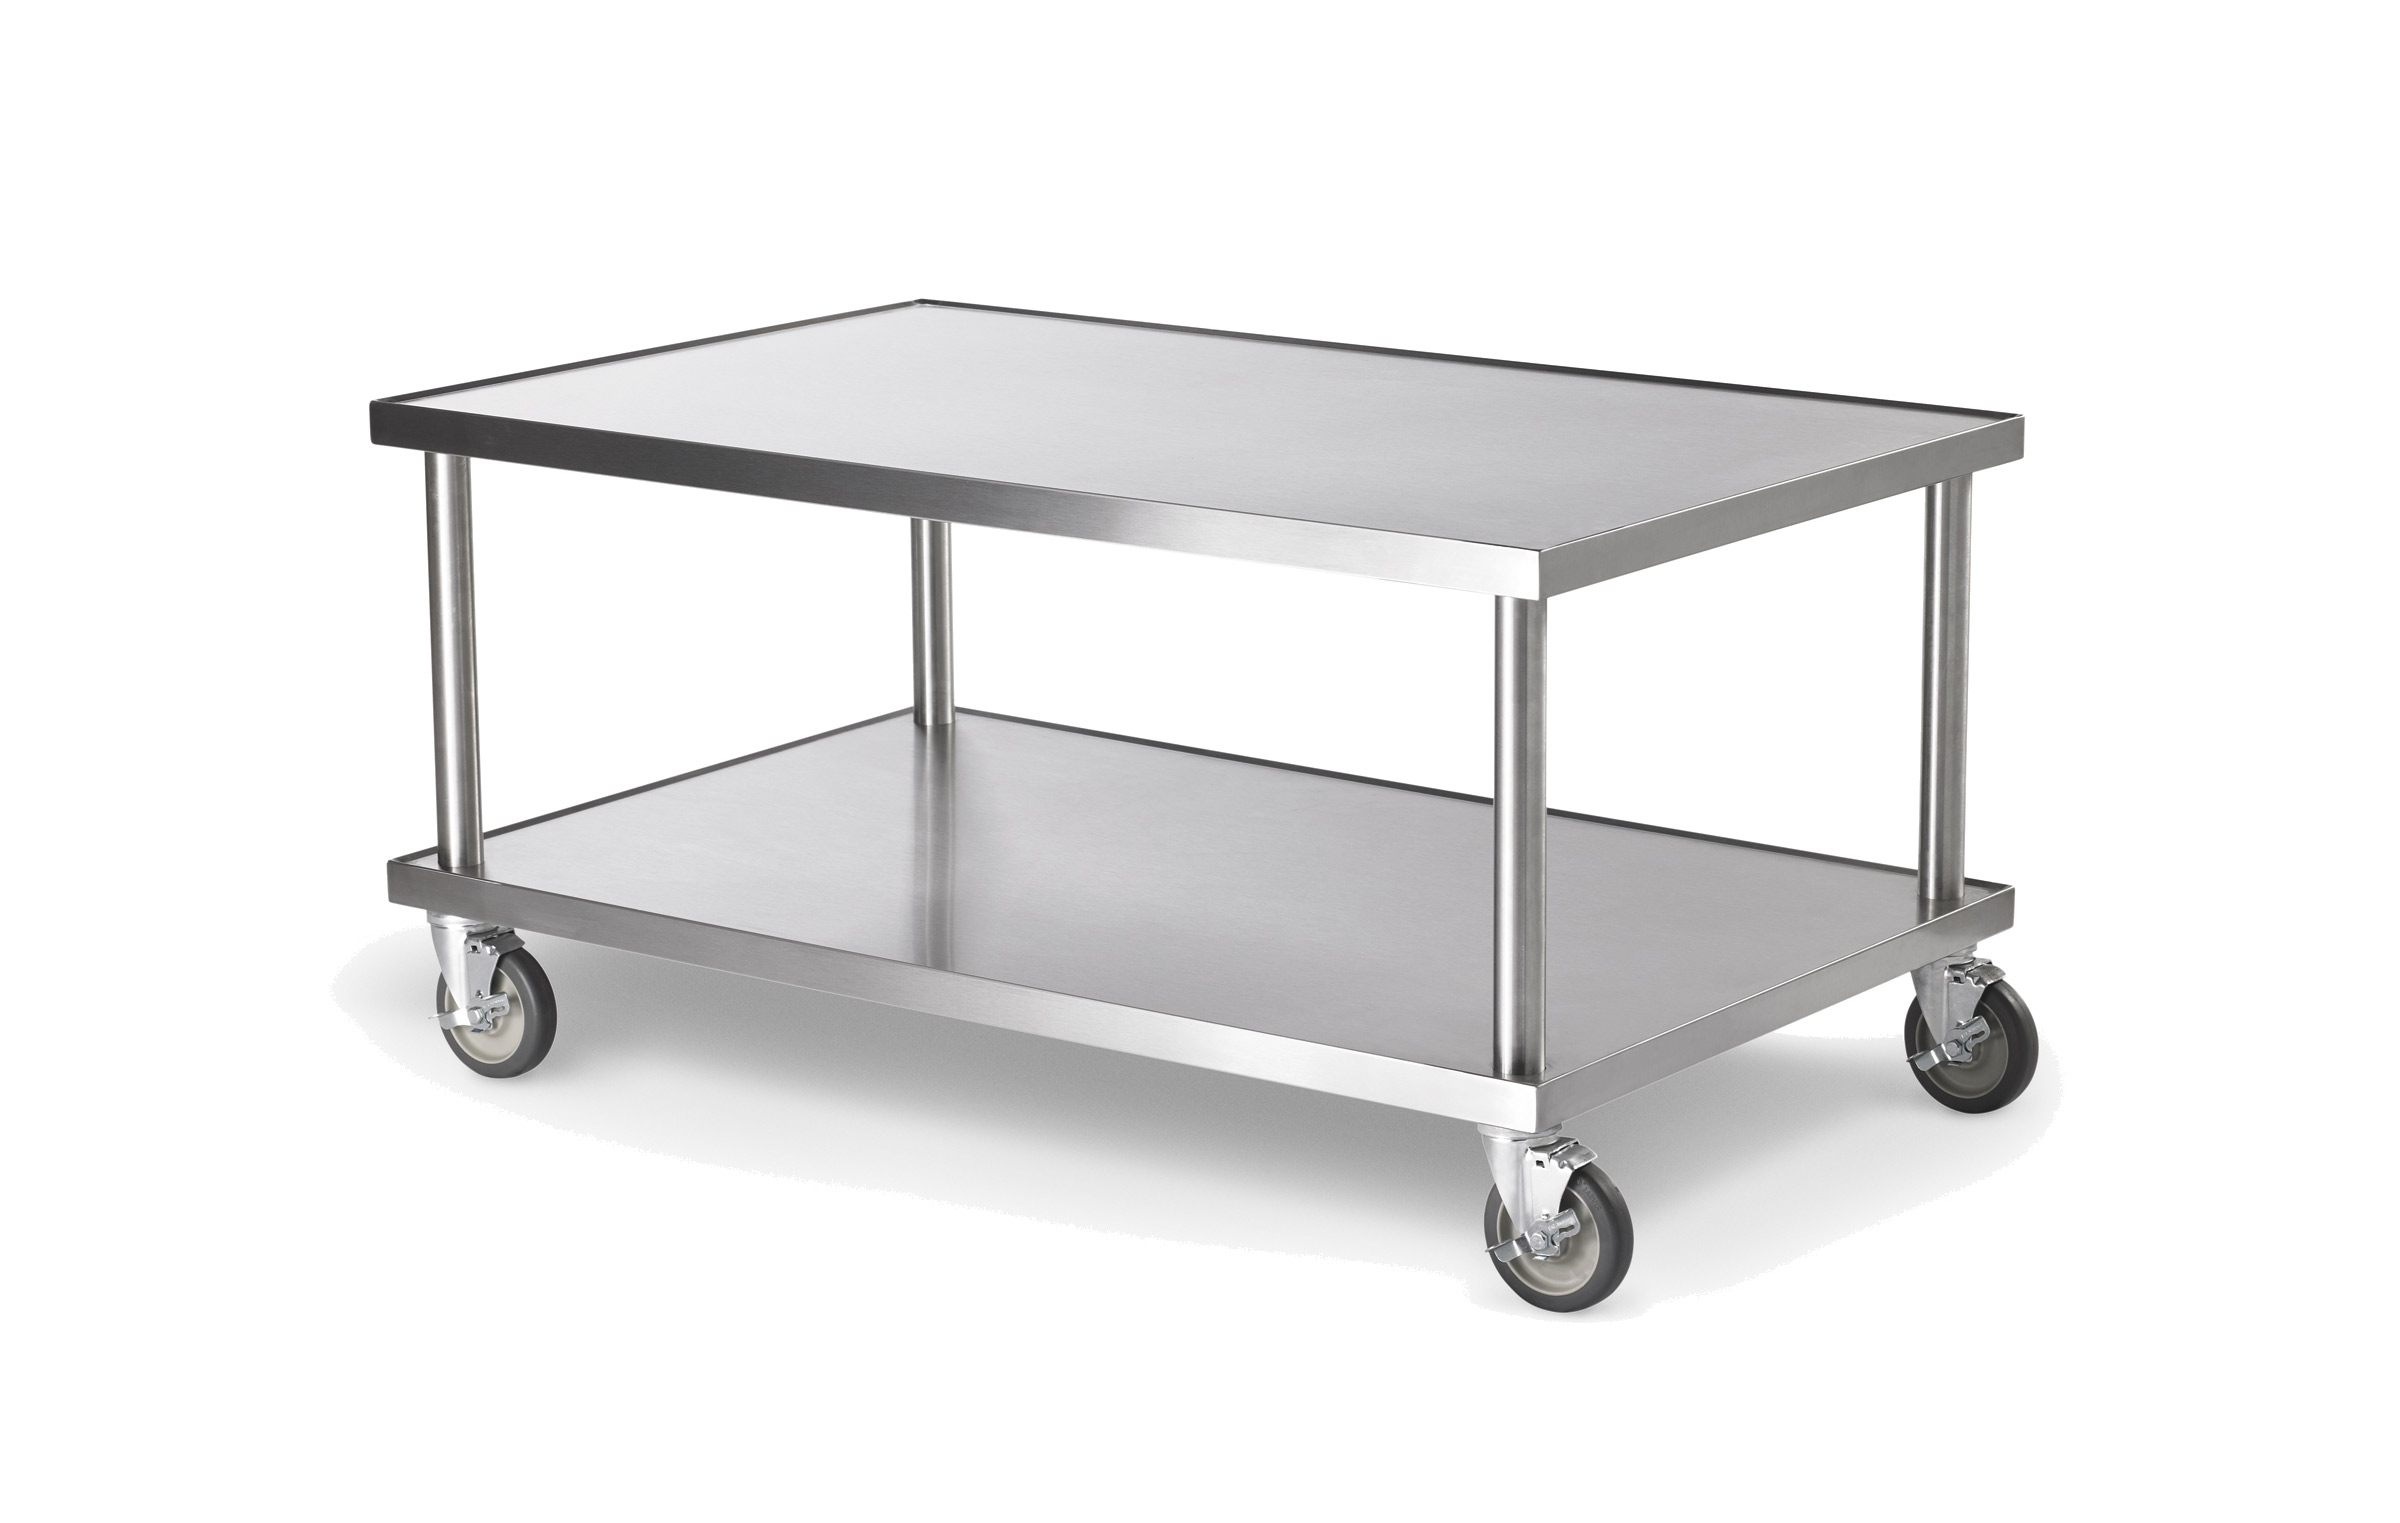 Vollrath 4087948 equipment stand, for countertop cooking